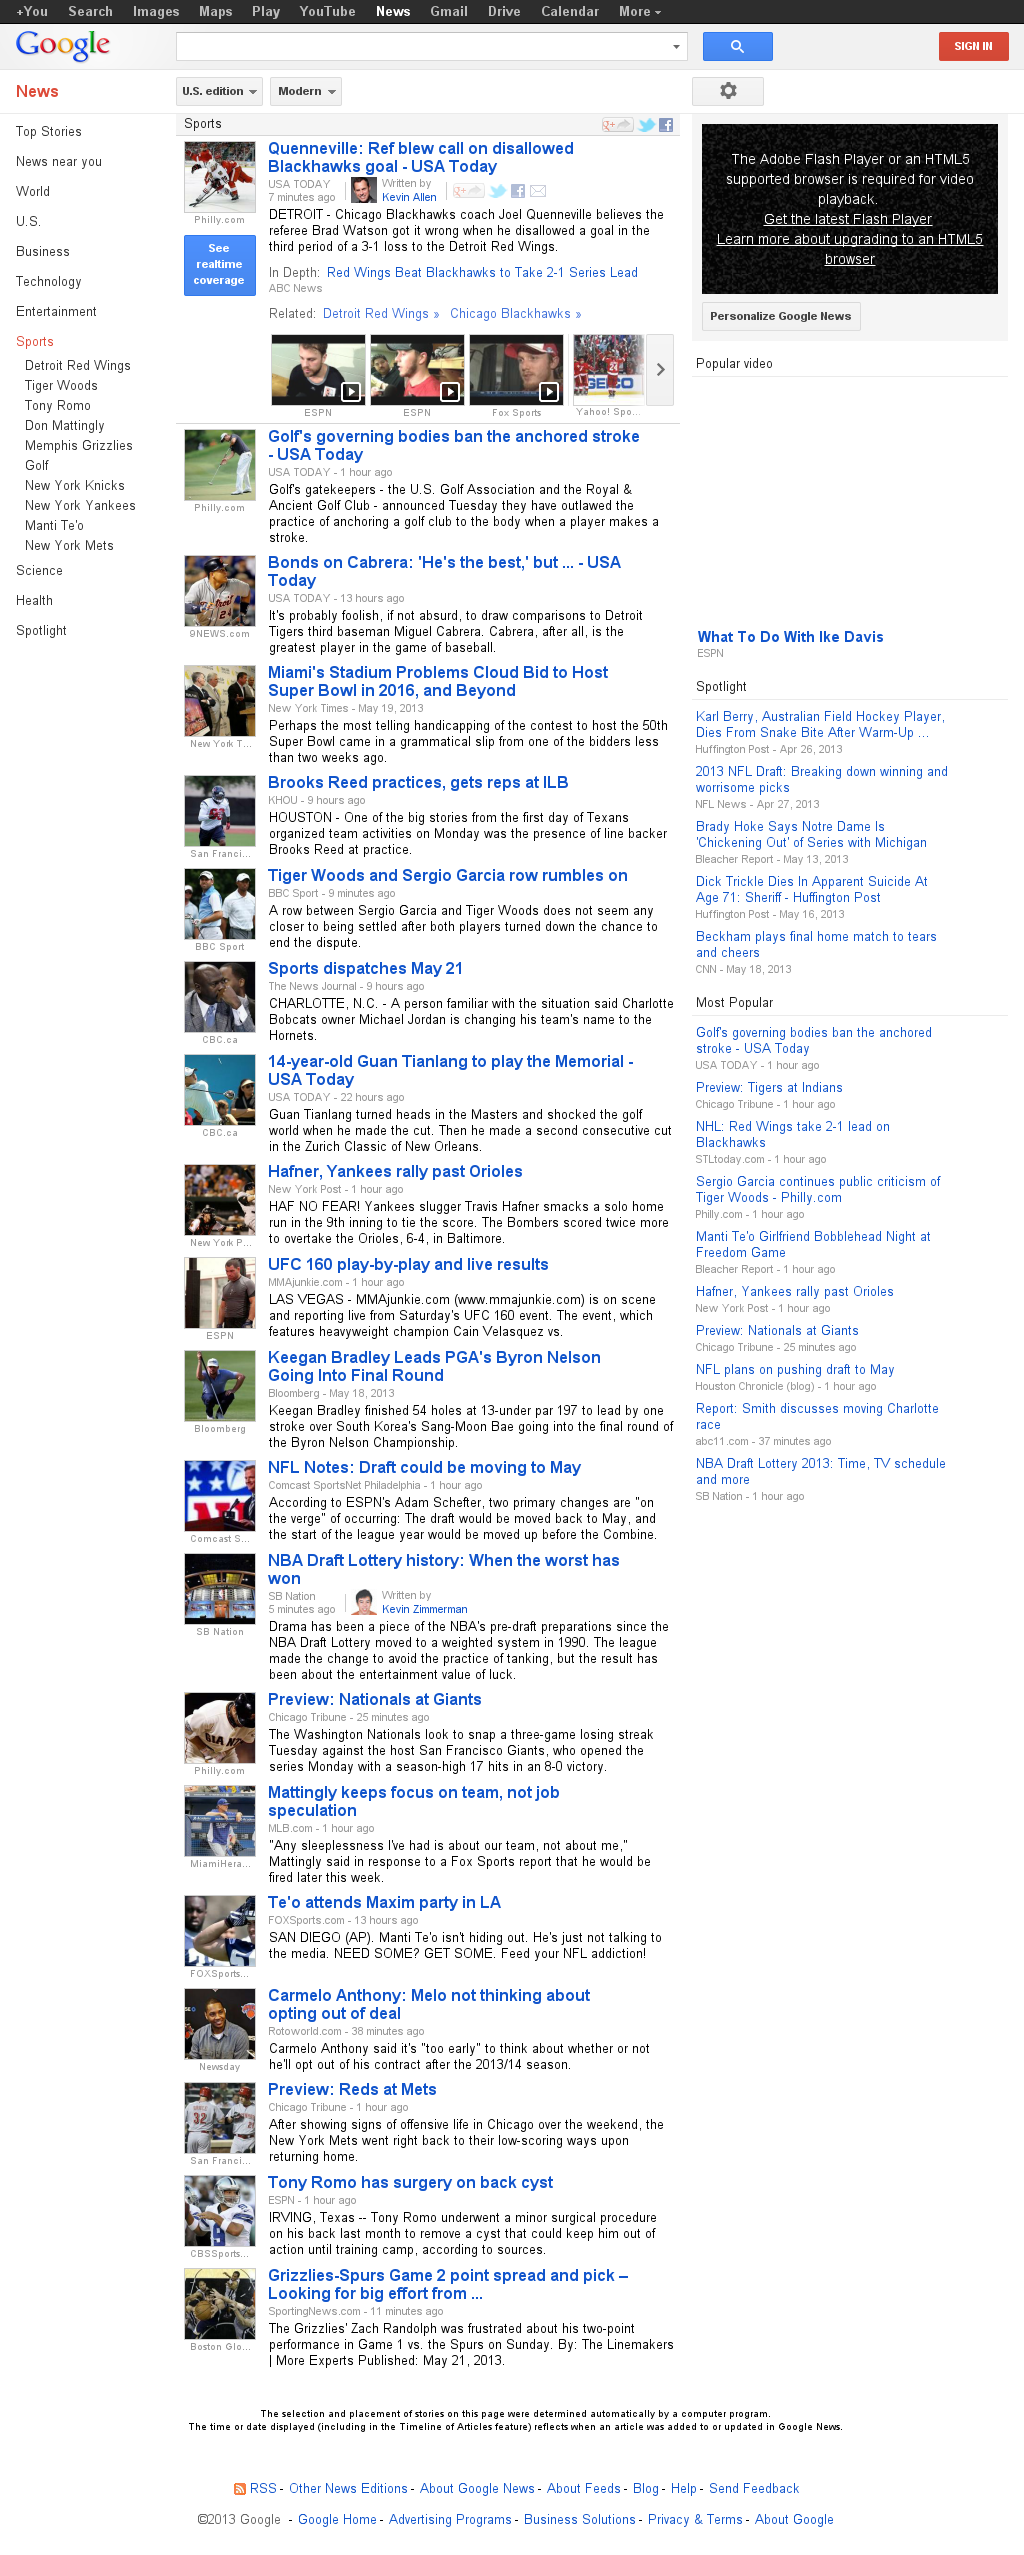 Google News: Sports at Tuesday May 21, 2013, 1:08 p.m. UTC